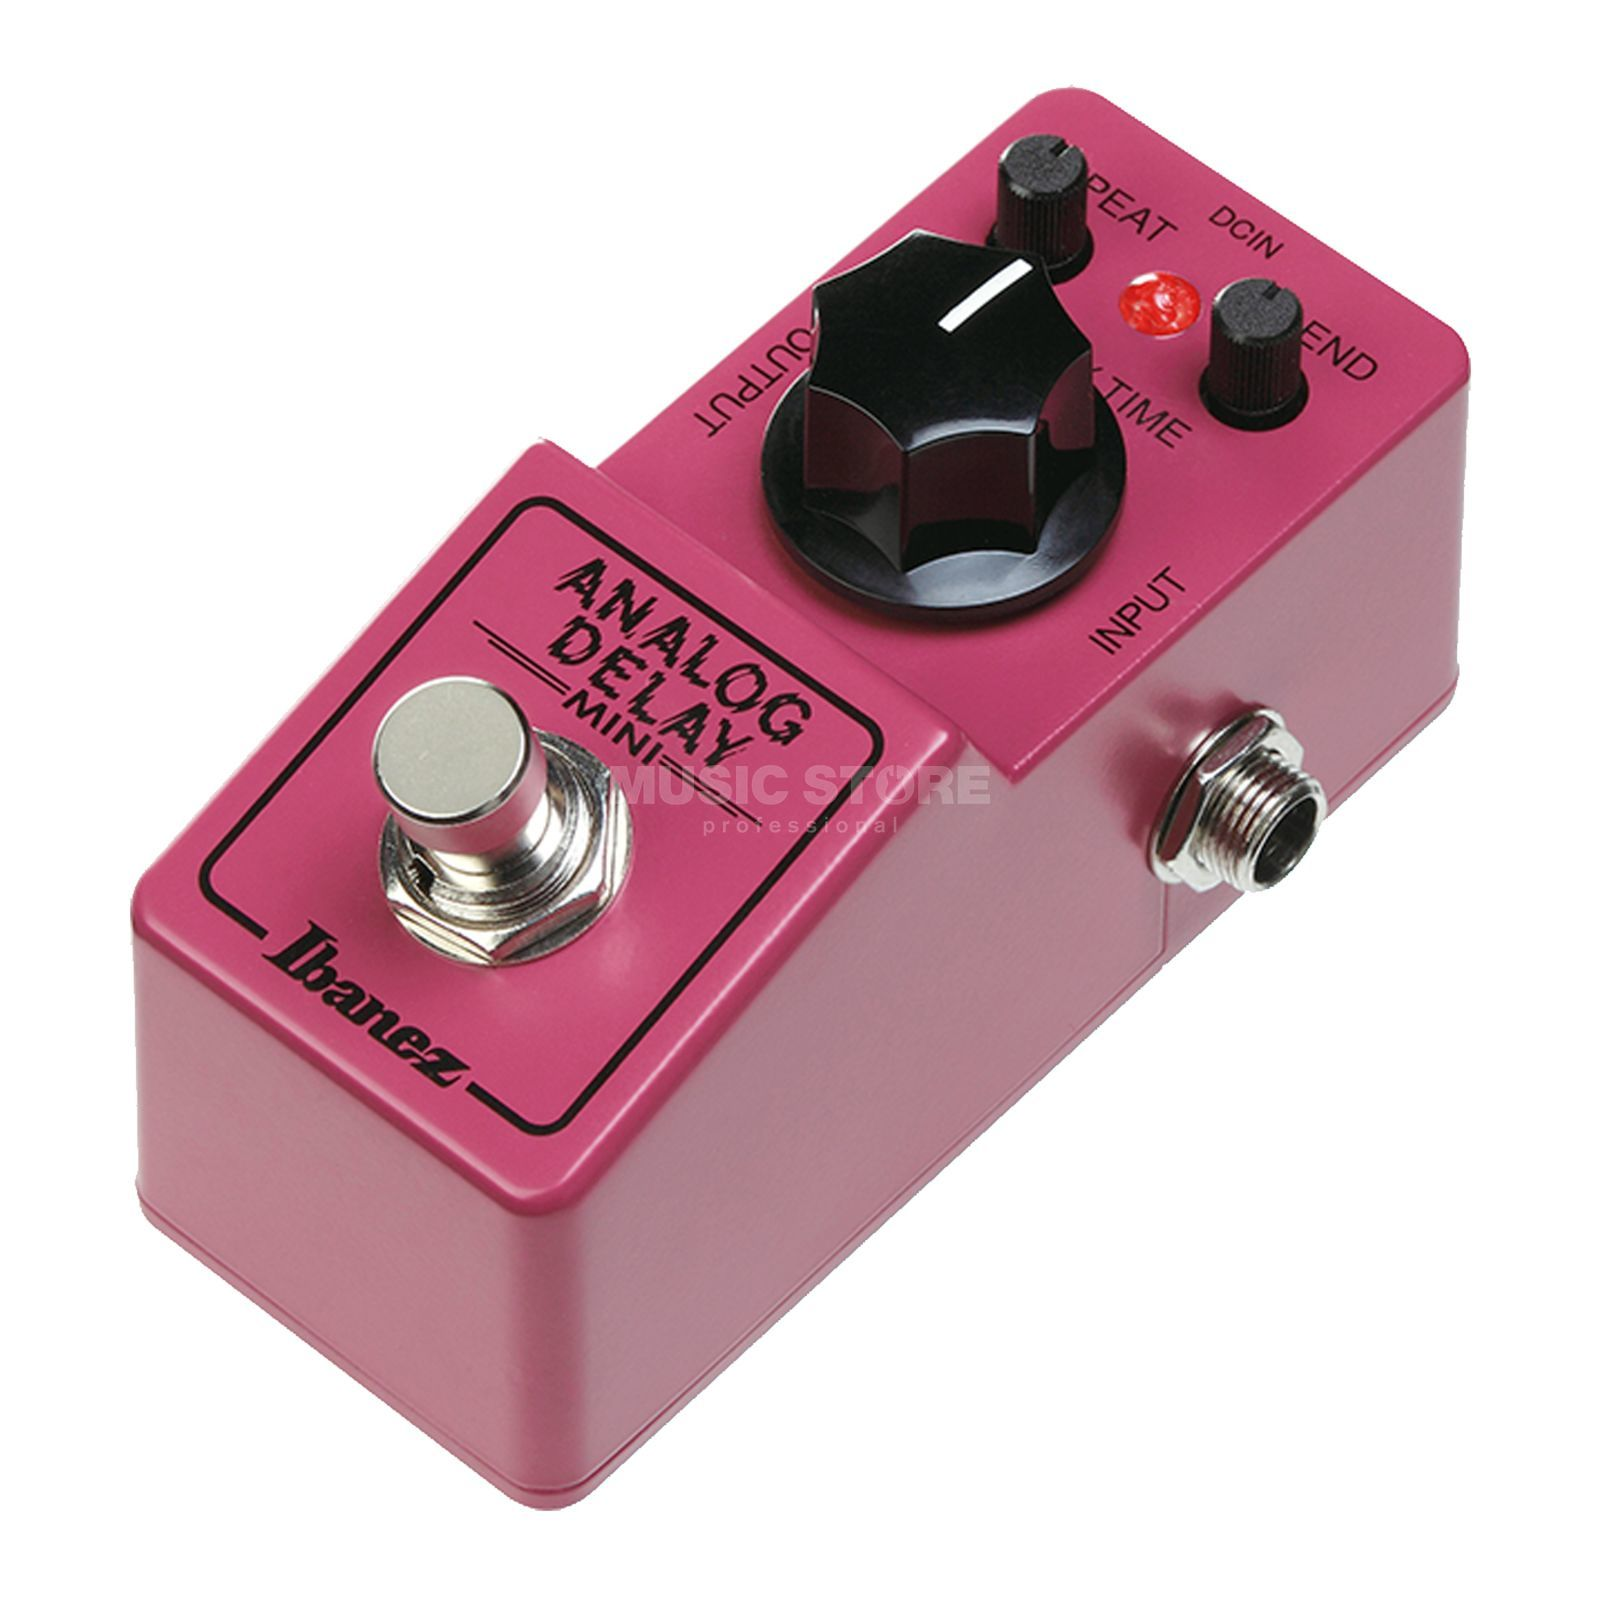 Ibanez AD Mini Analog Delay Produktbild